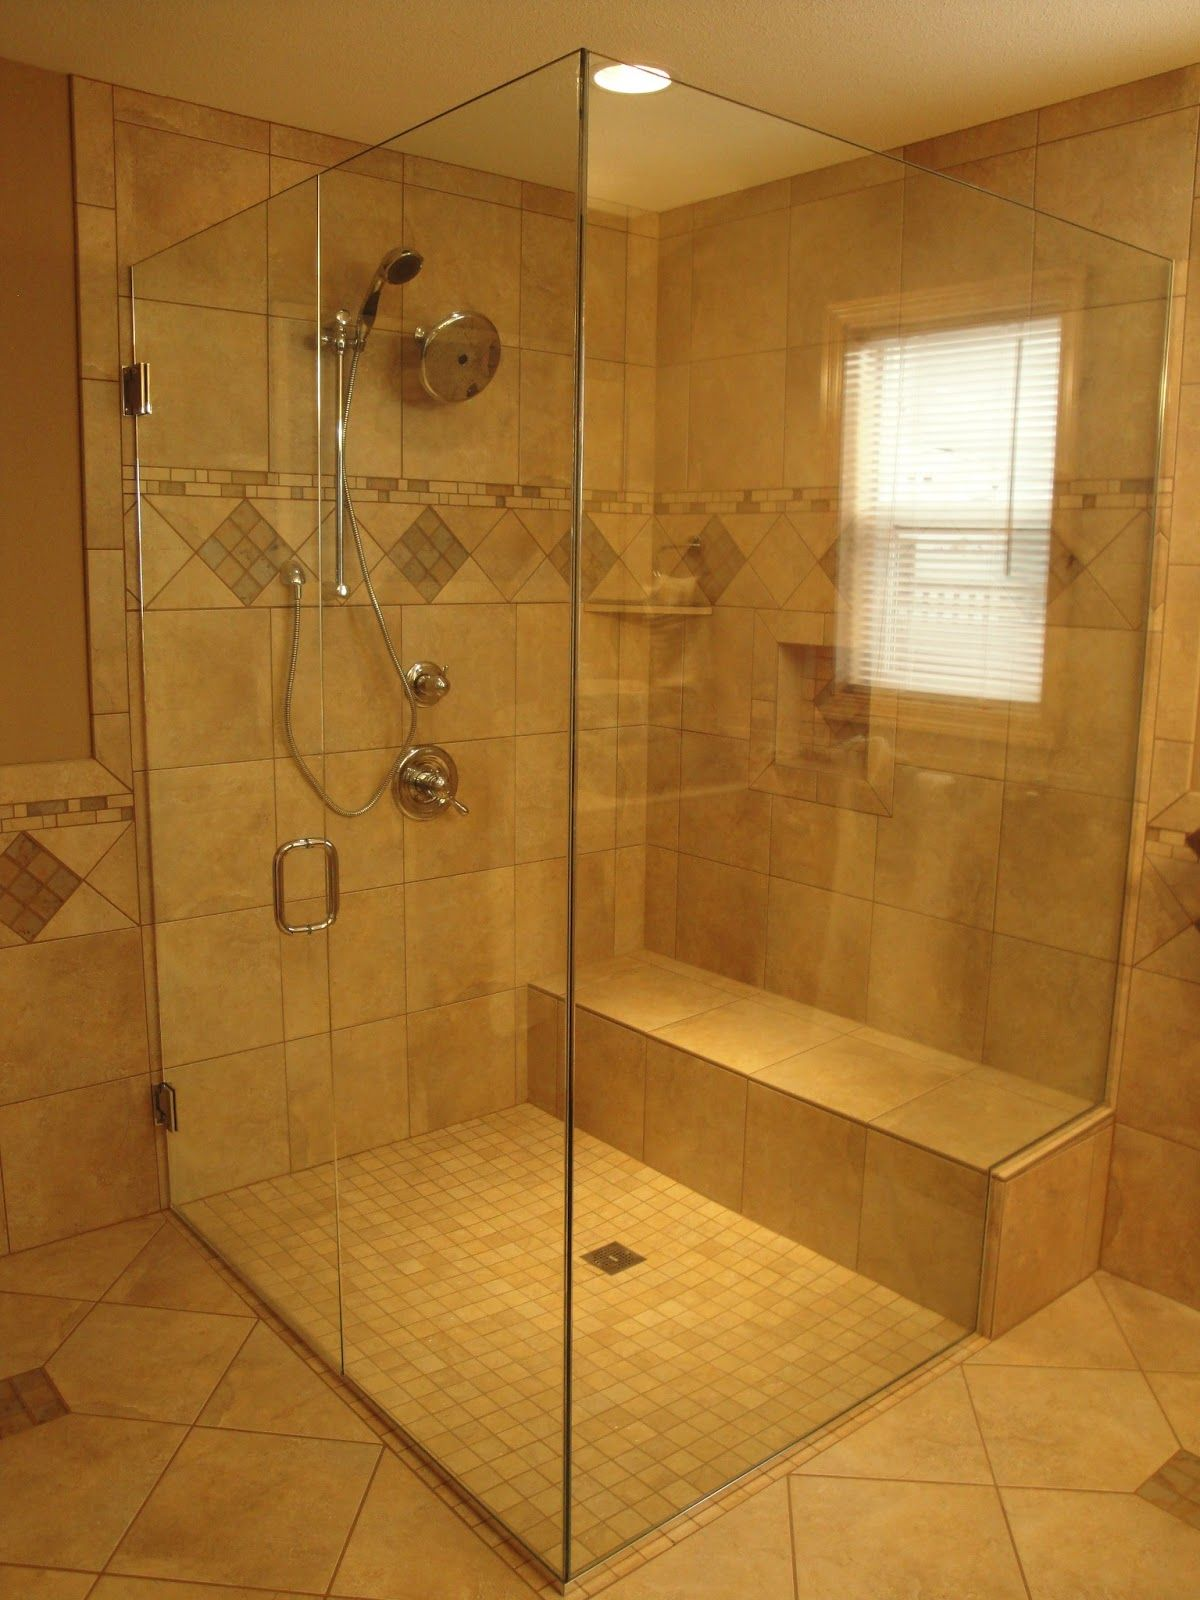 Concept Construction  Inc is a general contractor specializing in custom  built homes  additions  kitchen   bathroom remodeling in Portland  OR metro. Bathroom Remodel Tile Shower   More design tips at